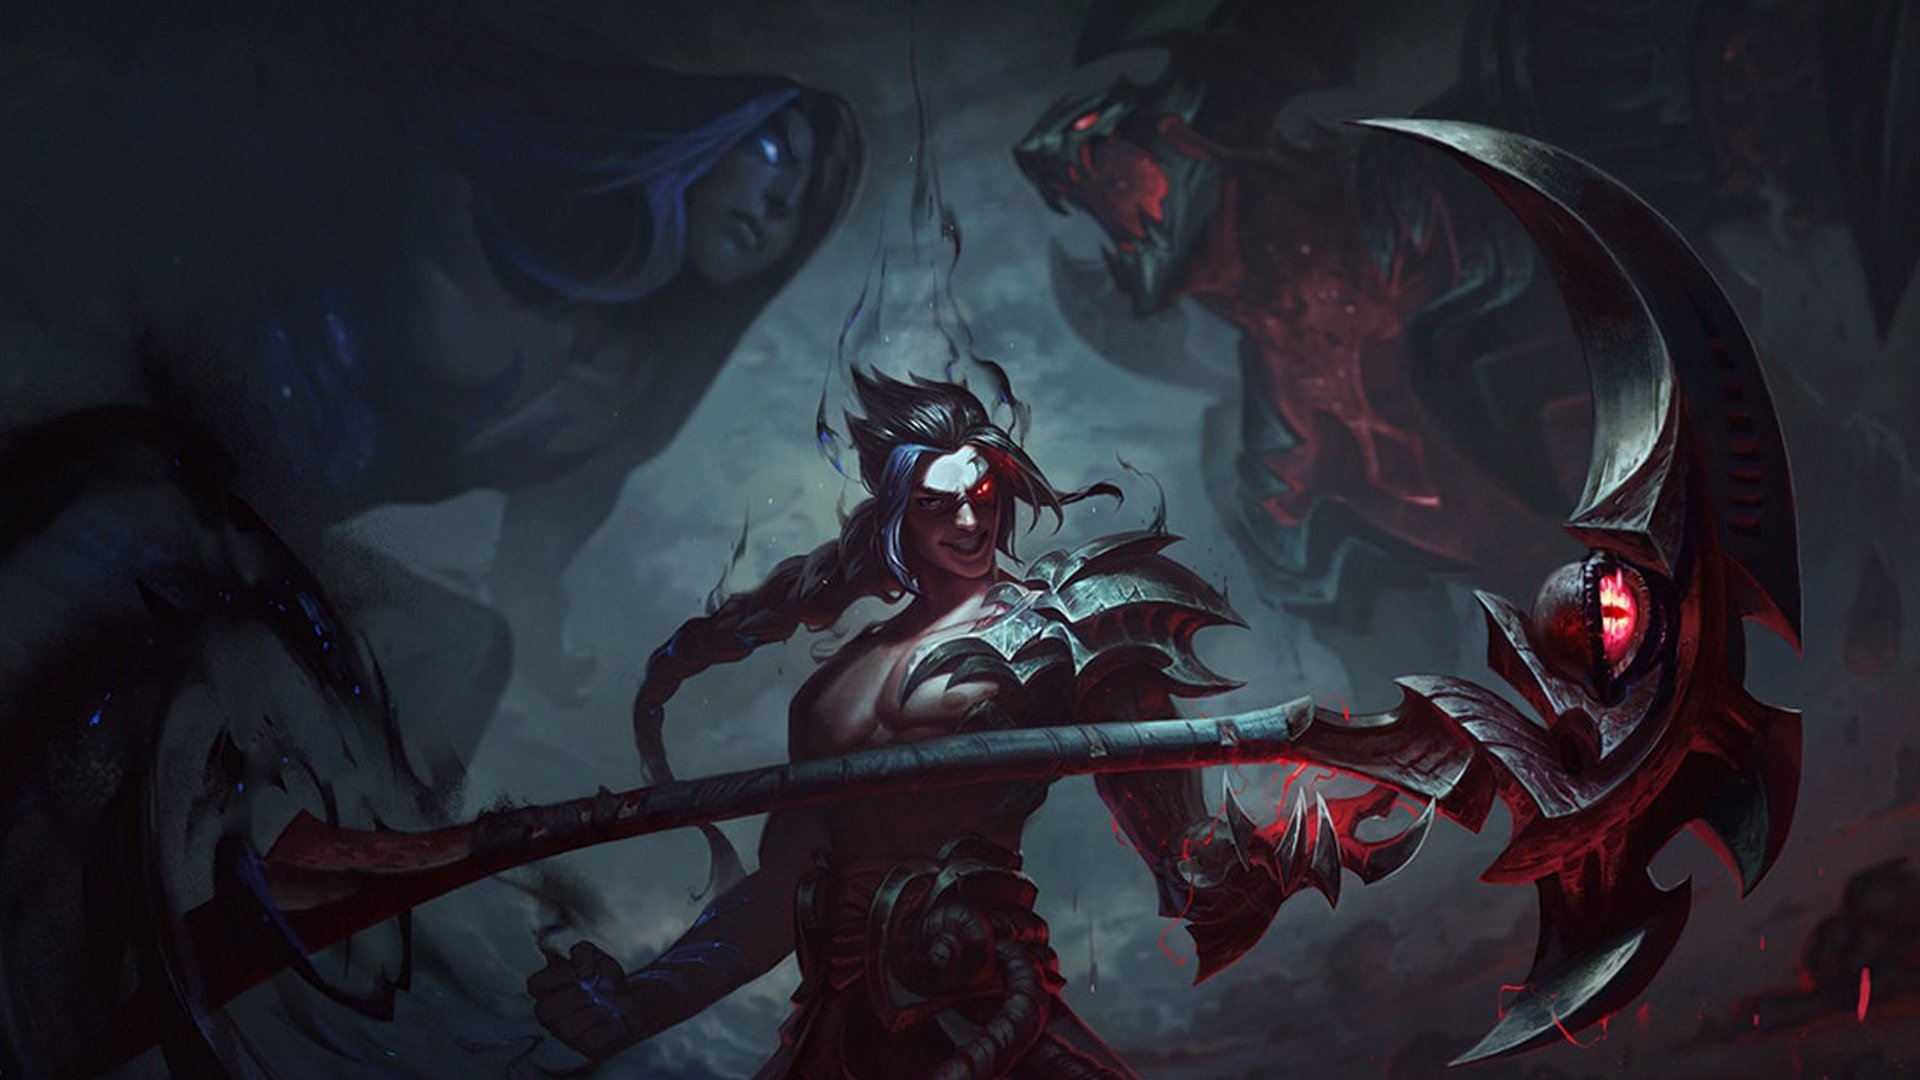 10 Kayn League Of Legends Hd Wallpapers Background Images Wallpaper Abyss